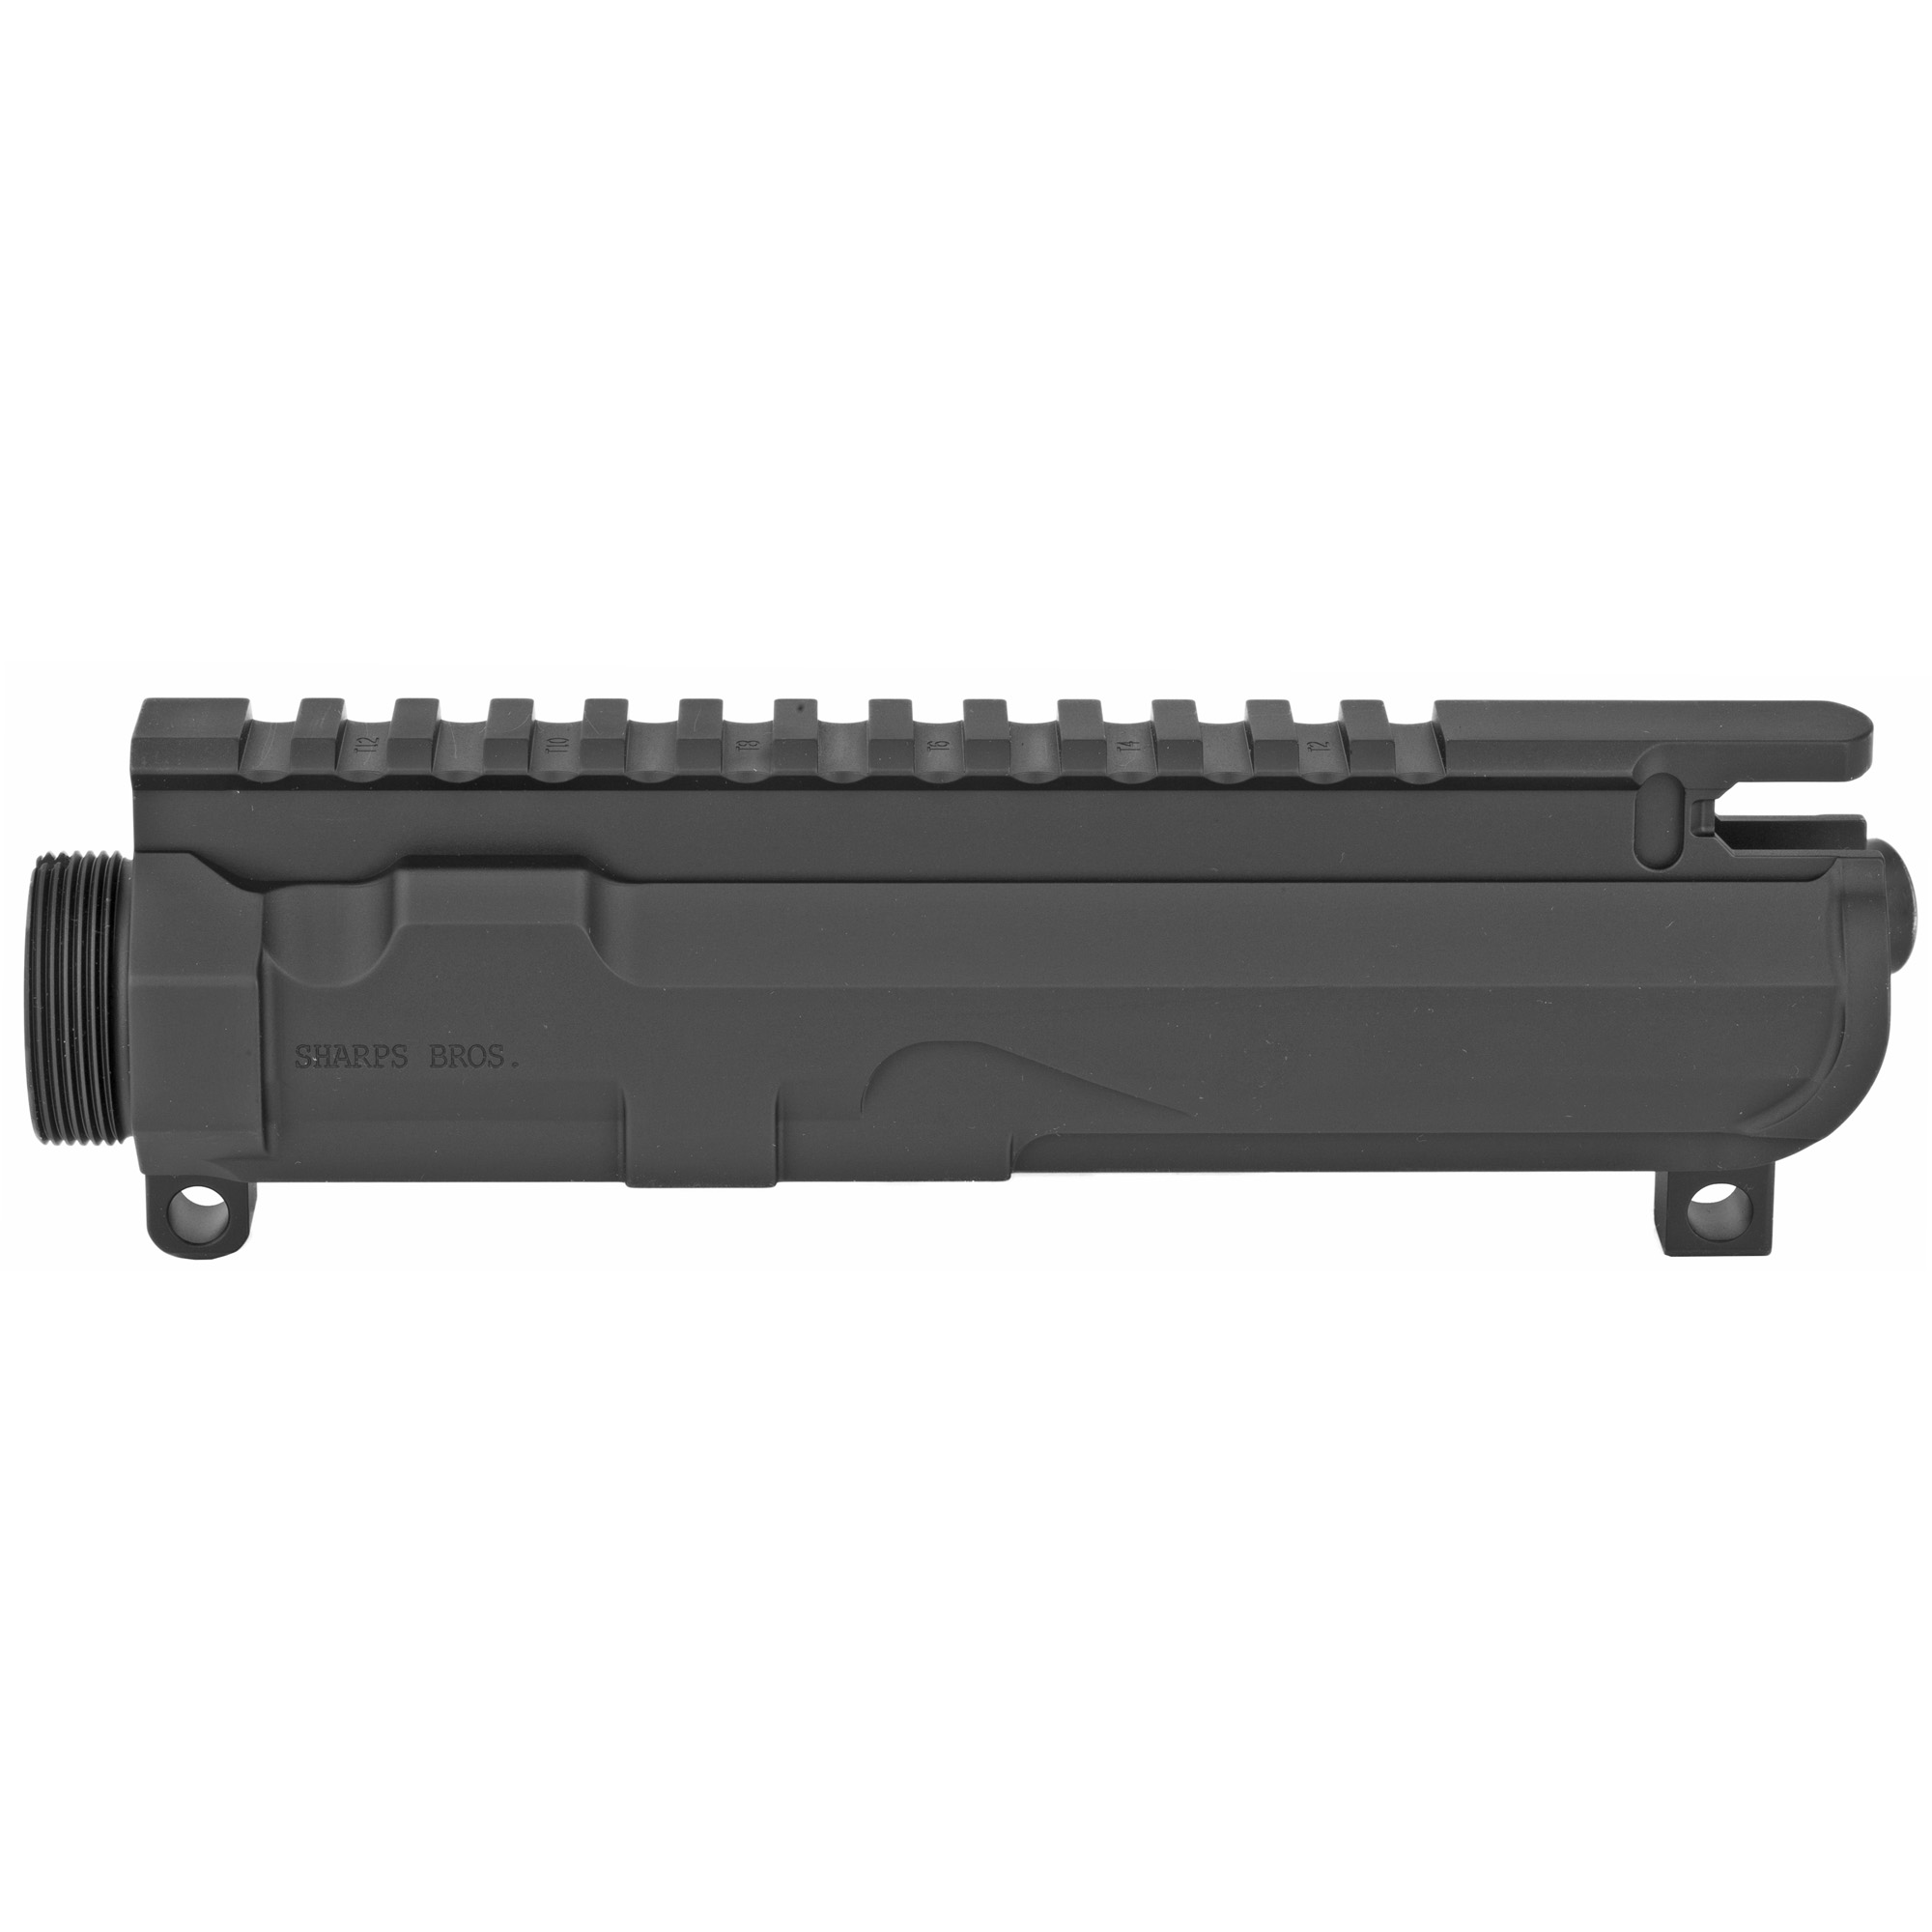 """Sharps often gets asked which upper matches the best with Sharps receivers. Any mil-spec upper will work"""" that is the beauty of the platform ... but which one fits and matches the best? The answer is this one. The SBUR03 matches all of Sharps lower receivers perfectly"""" but it also matches the lines of Sharps hand guards perfectly as well. This receiver is meant for .223"""" 5.56"""" .224 Valkyrie"""" 300 BLK and 6.5 Grendel calibers. Port opening is not large enough for 450 Bushmaster"""" 458 SOCOM or 50 Beowulf. Made from 7075-T6 just like Sharps lower receivers. Anodized black. Comes with forward assist kit & dust cover installed."""